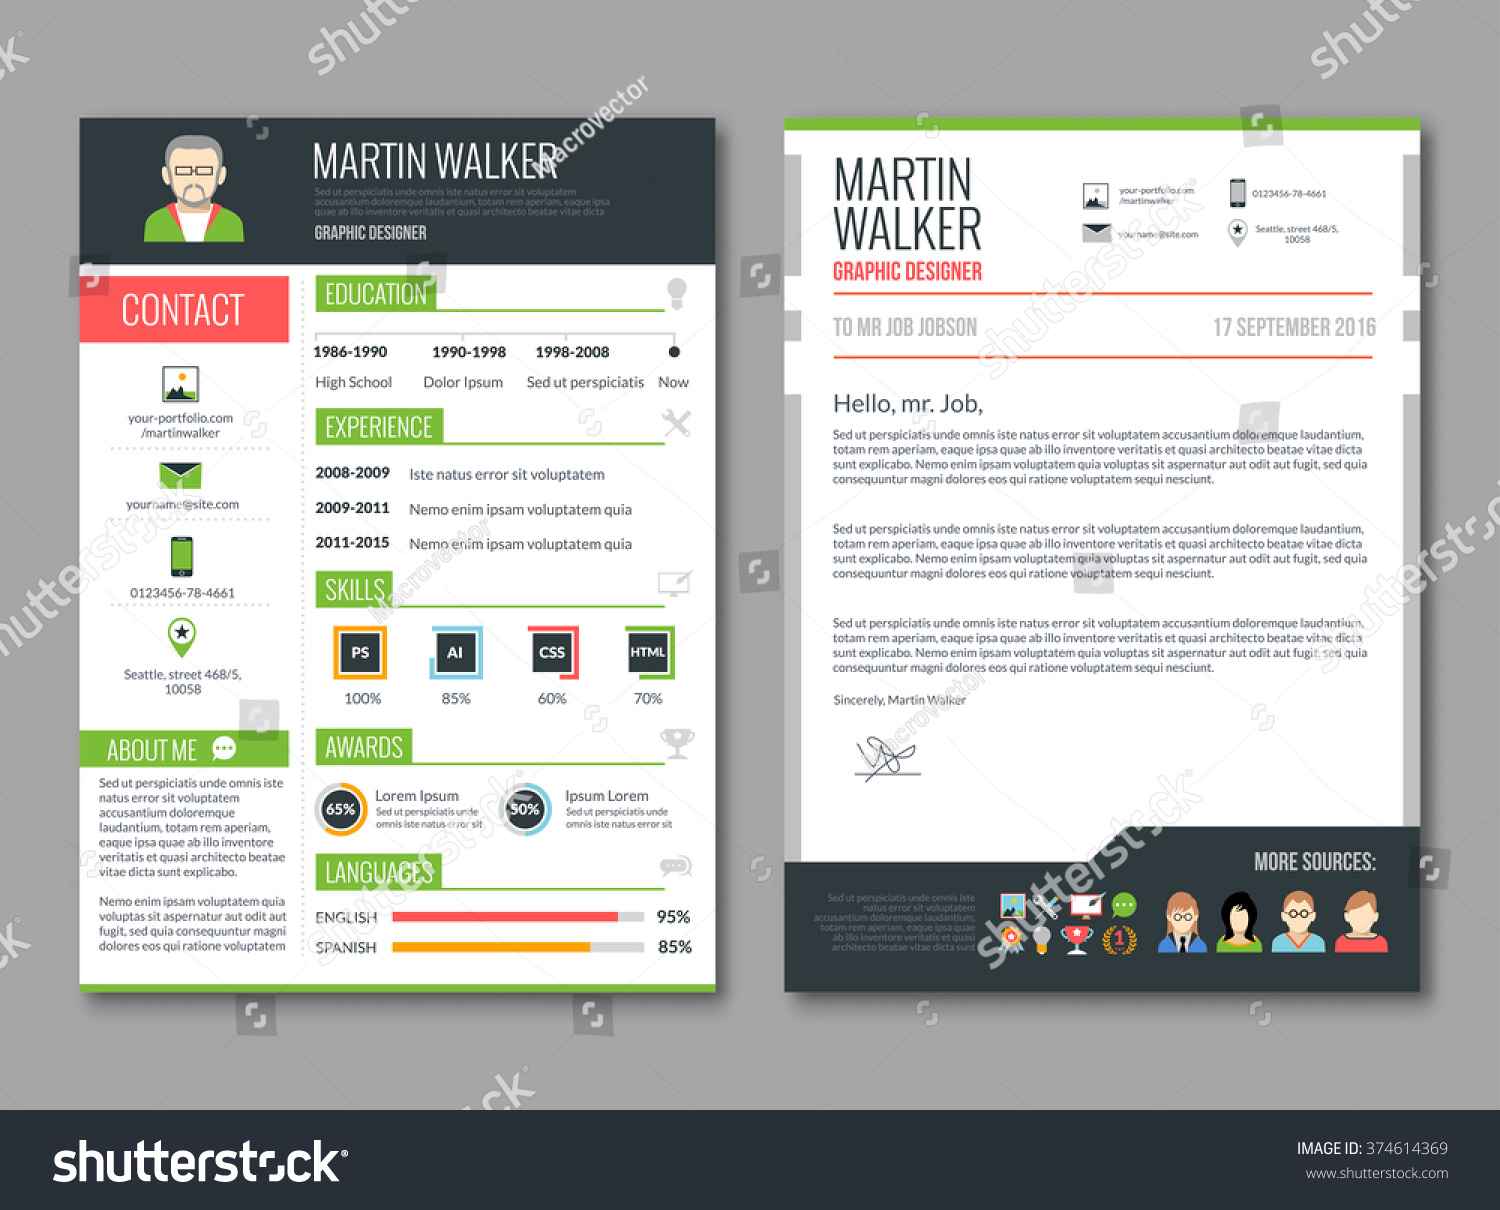 cv layout template candidate education job stock vector  cv layout template candidate education and job experience resume information vector illustration